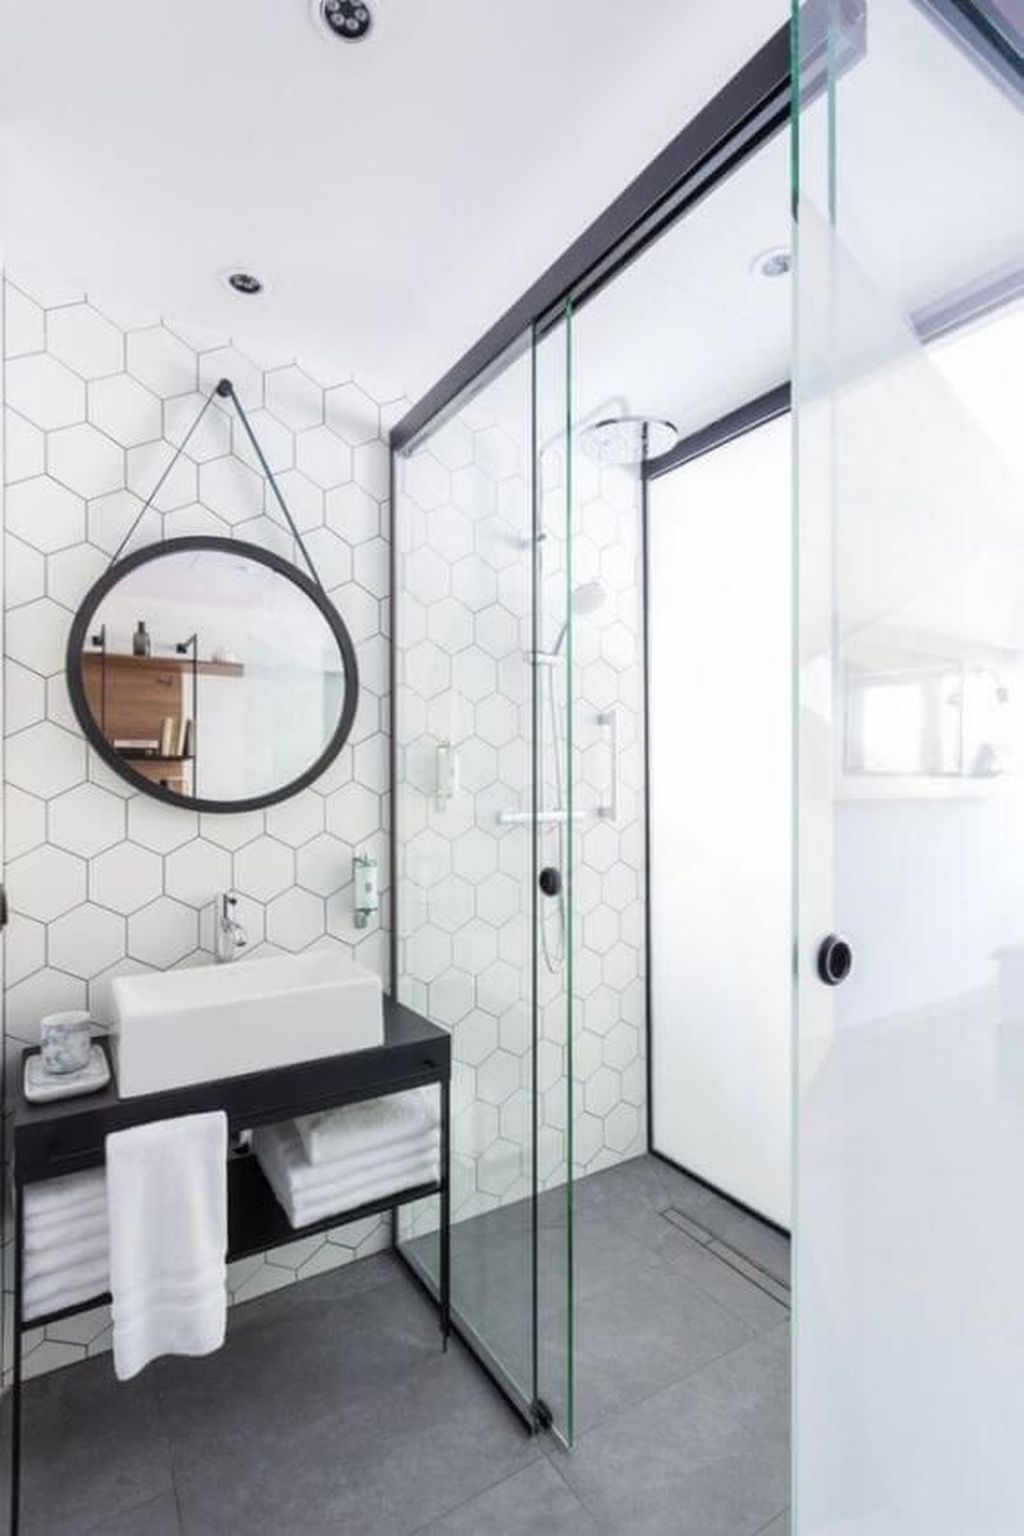 Incredible Curbless Shower Ideas For House13